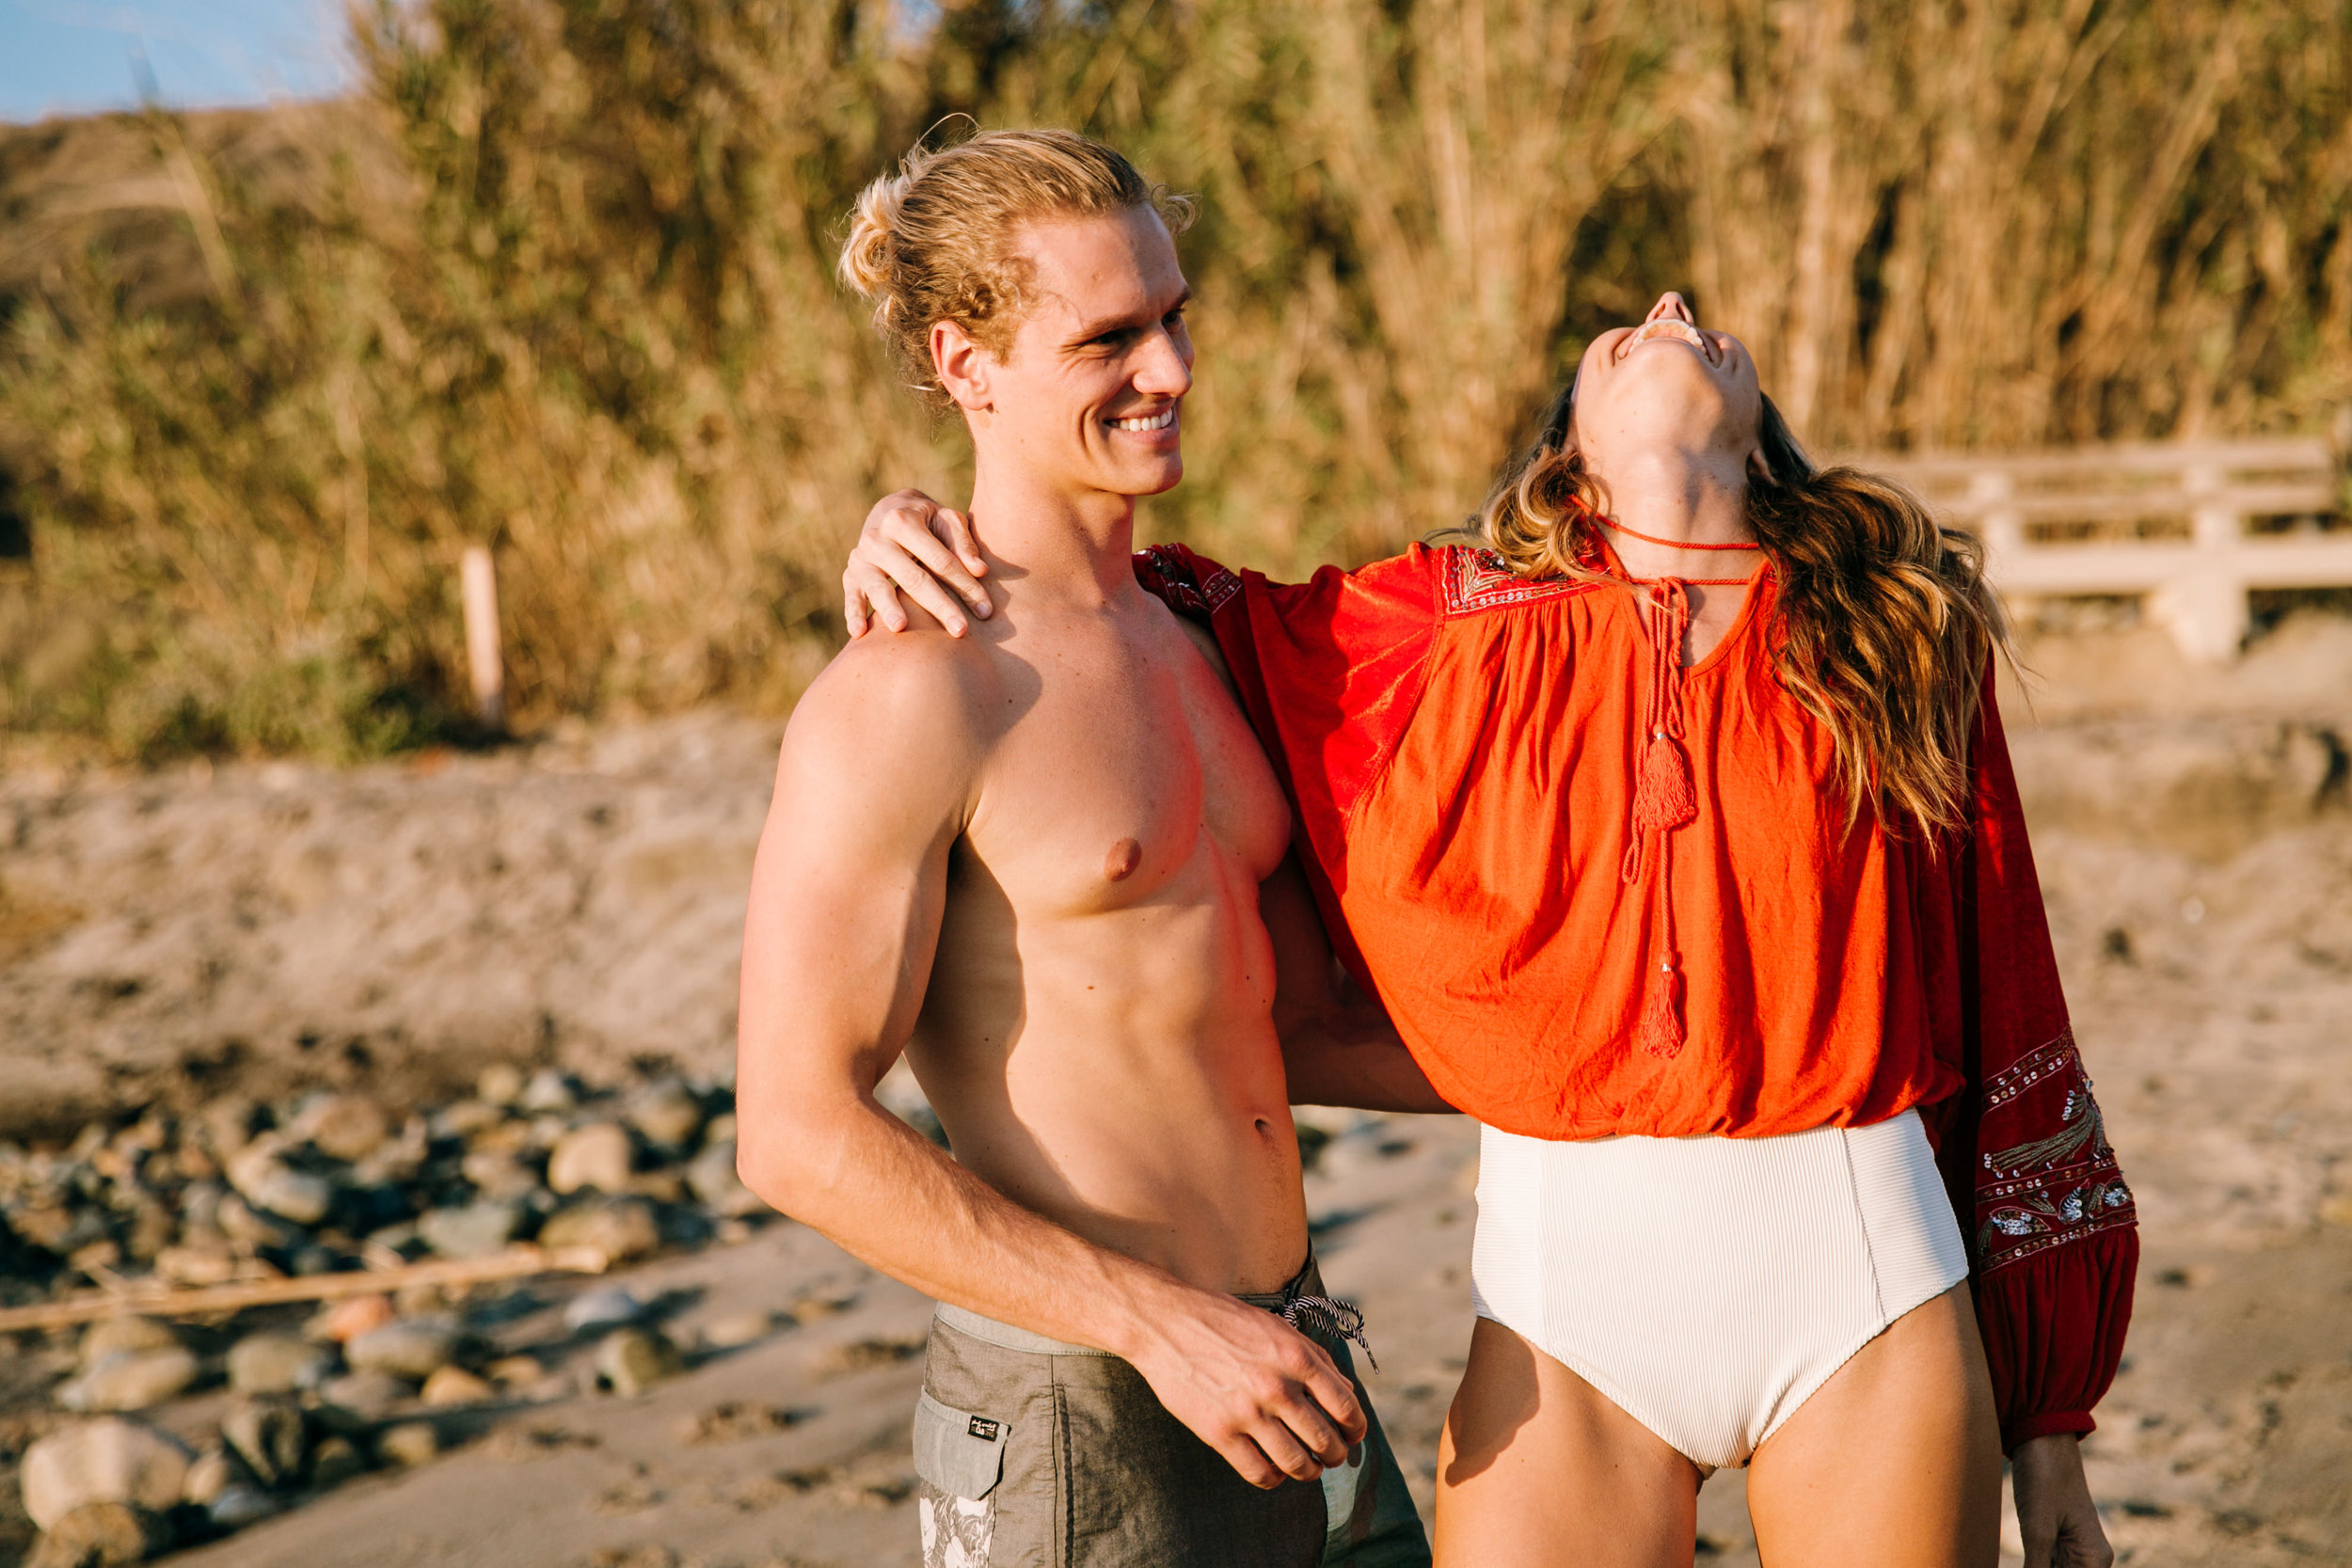 San Clemente engagement photographer, Southern California engagement photographer, Orange County engagement photographer, SoCal engagement photographer, San Onofre engagement session, San Onofre beach